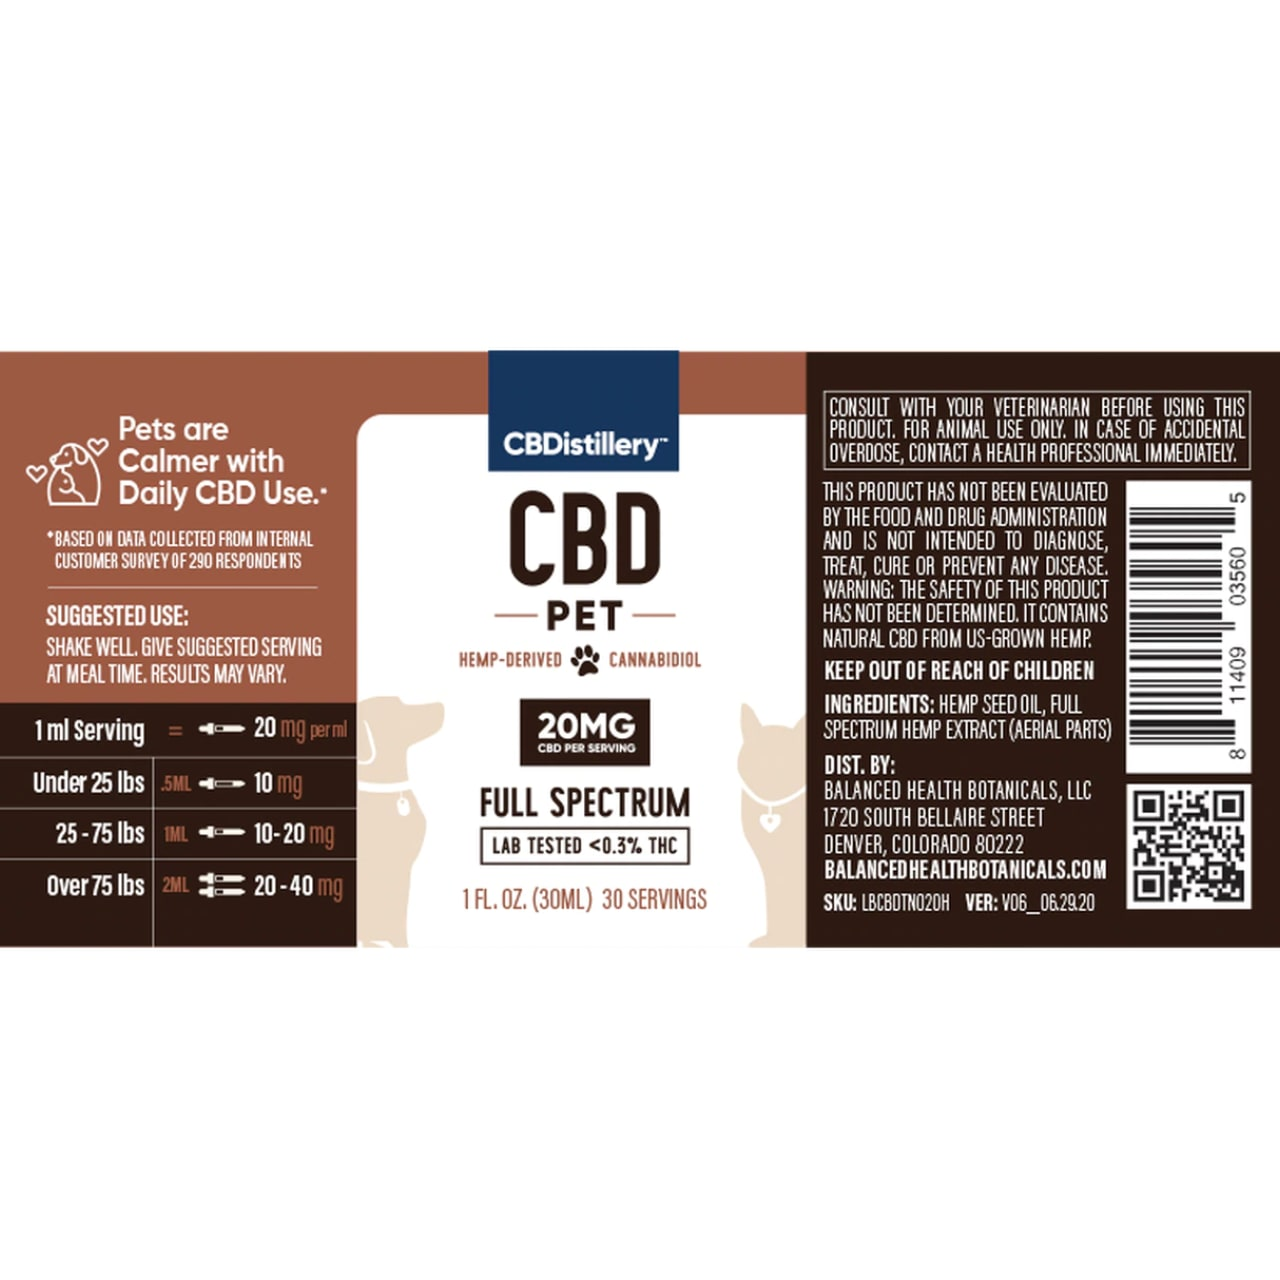 CBDistillery, CBD Pet Tincture, Full Spectrum, 1oz, 600mg of CBD2